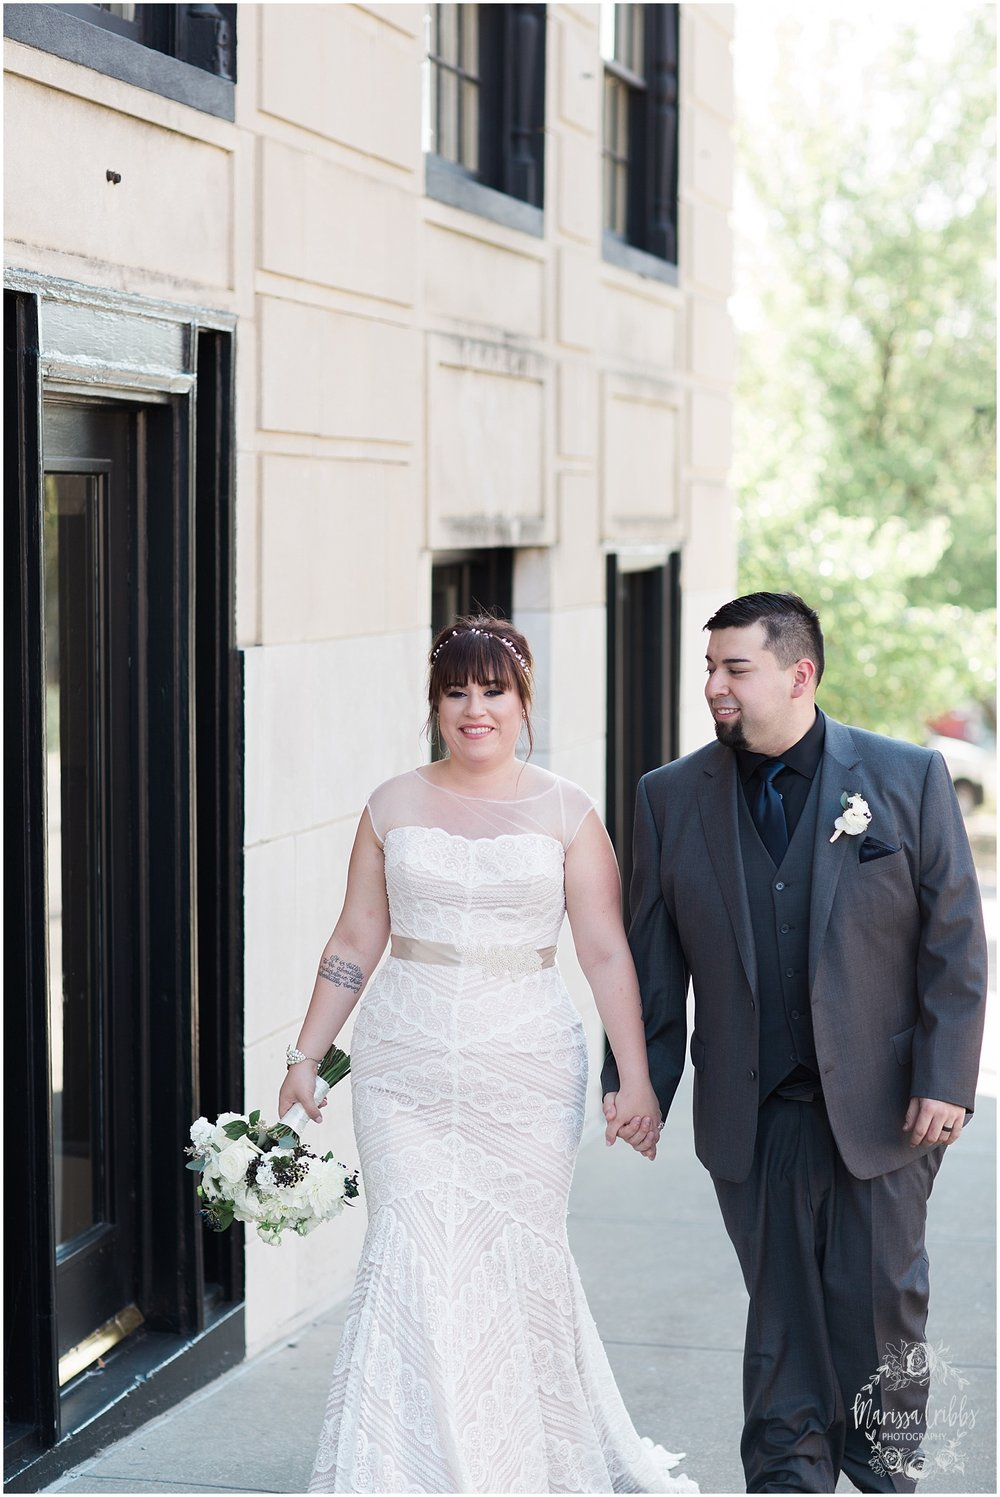 Molly & Alex Lawrence Wedding | The Eldridge Hotel | Lawrence, KS Weddings | Marissa Cribbs Photography | Belle and Bows_0895.jpg